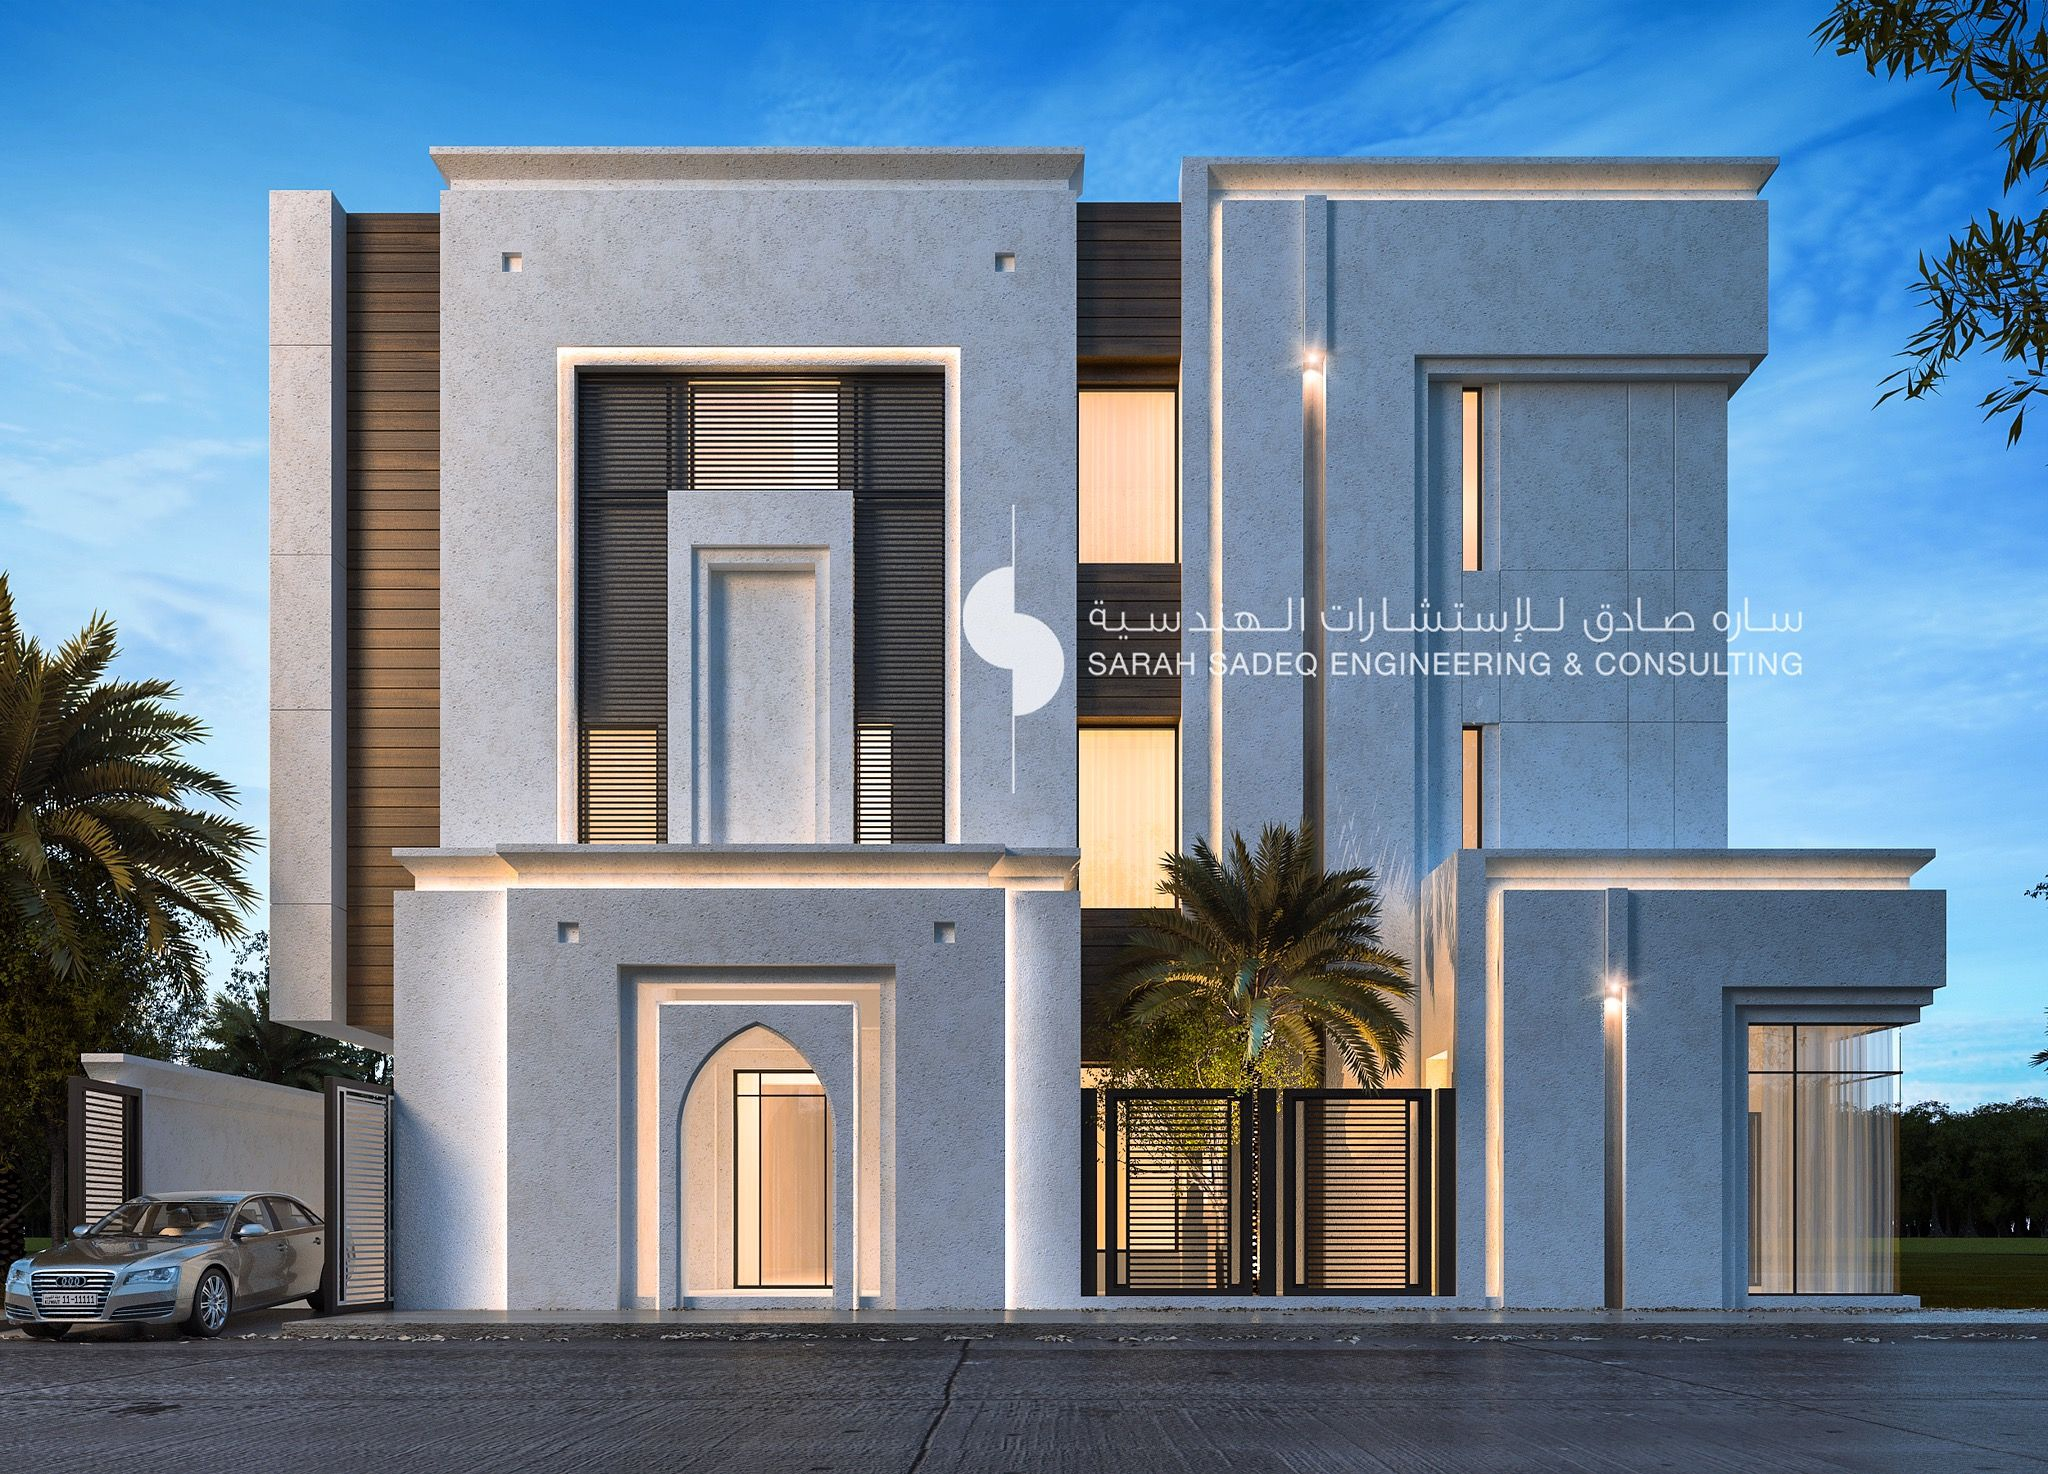 500 M Private Villa Kuwait By Sarah Sadeq Architects Facade Architecture Design Classic House Exterior Architect House